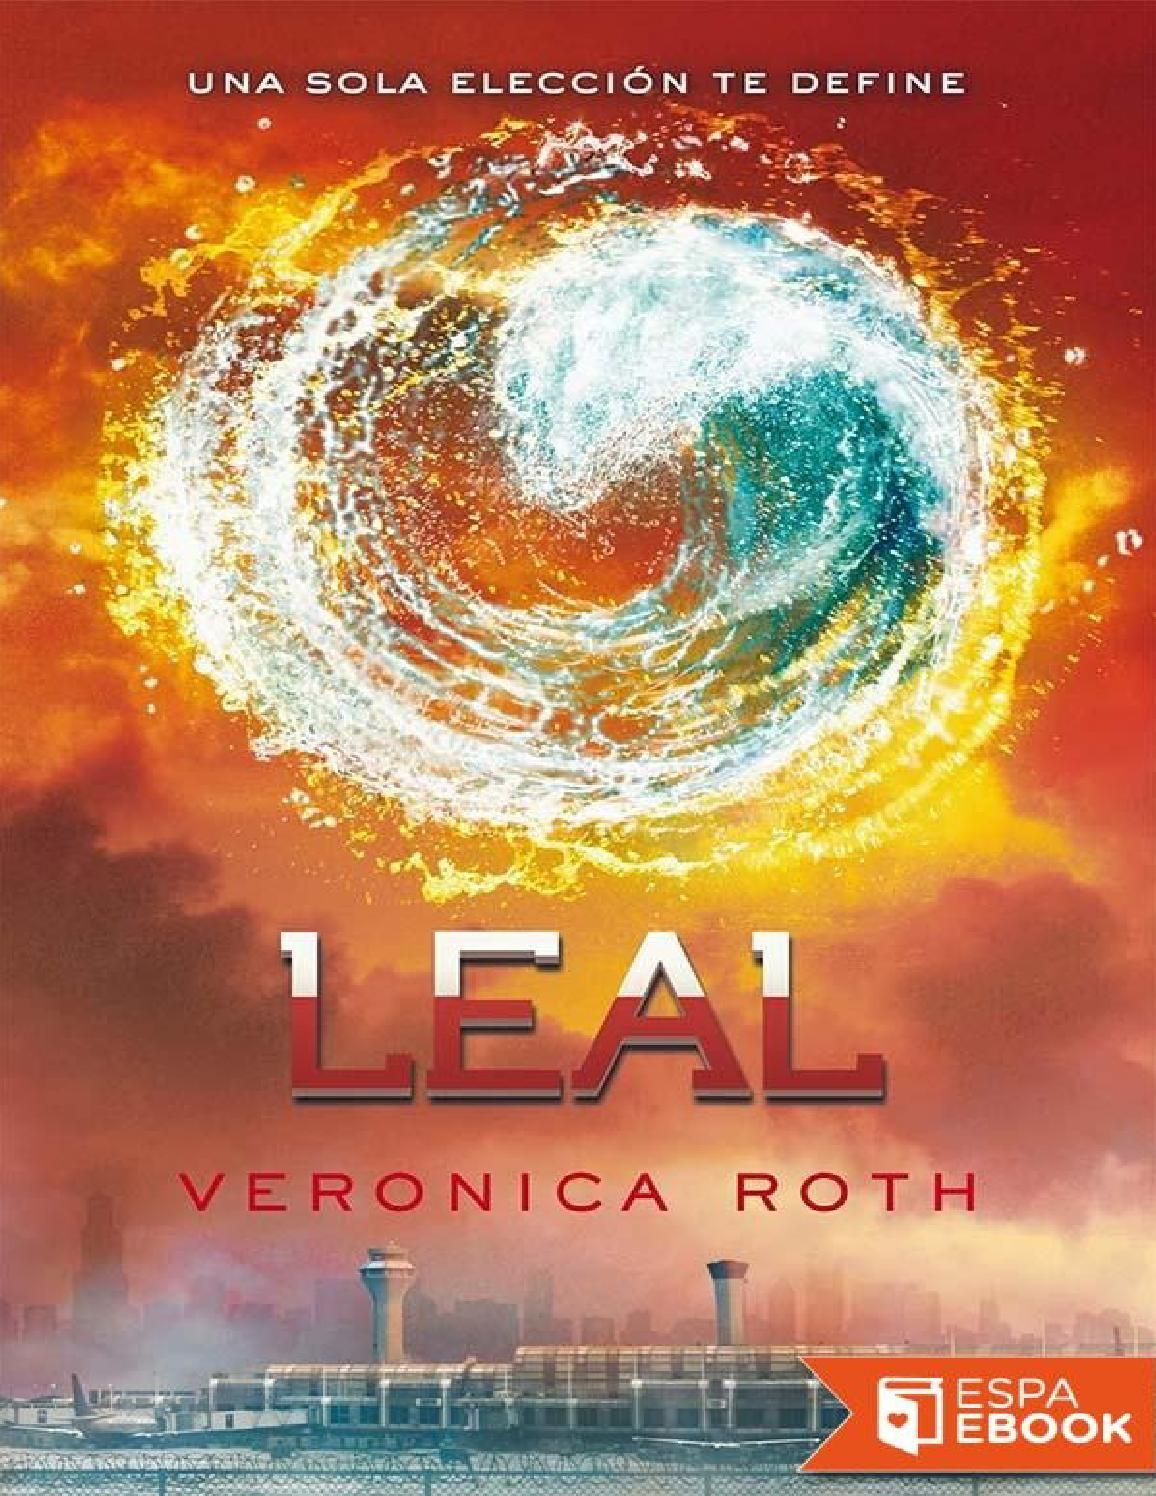 Leal veronica roth